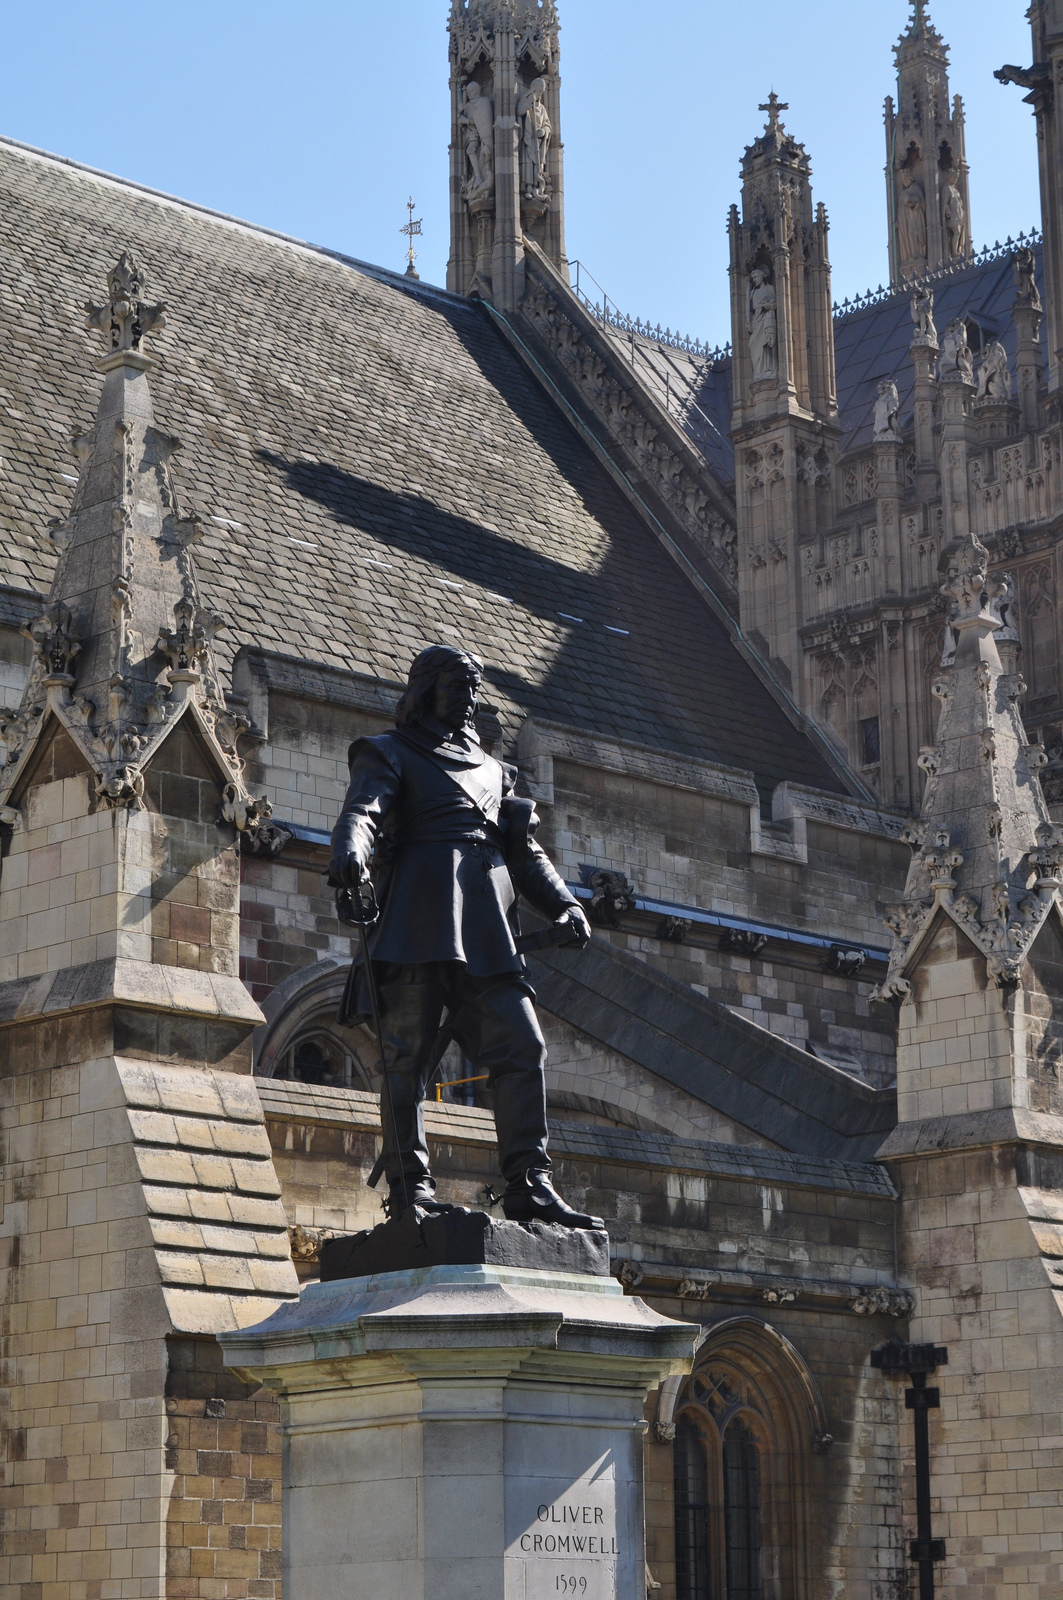 Oliver Cromwell by Sue Lowry